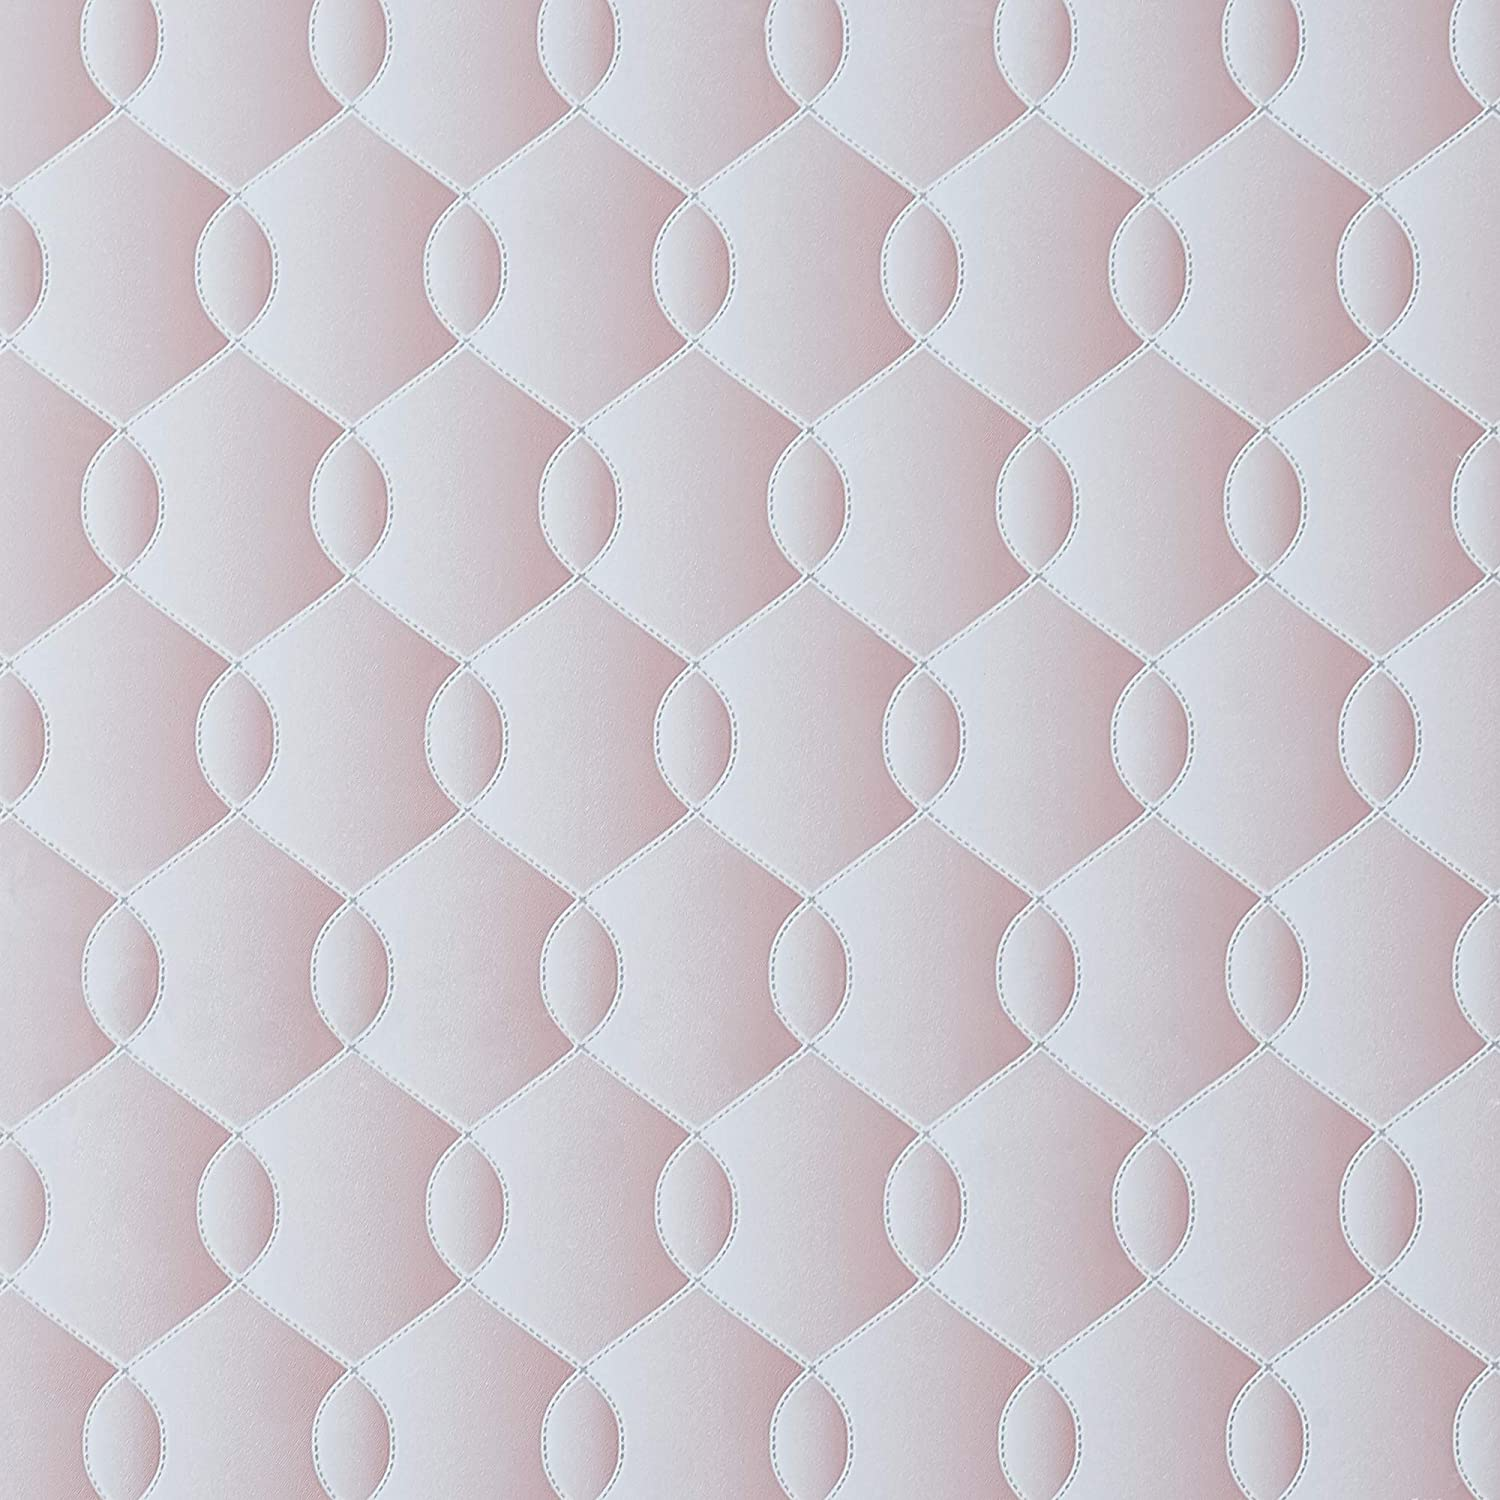 3 Wave Pink Dream On Me Inner Spring Carina Collection Pack N Play Mattress